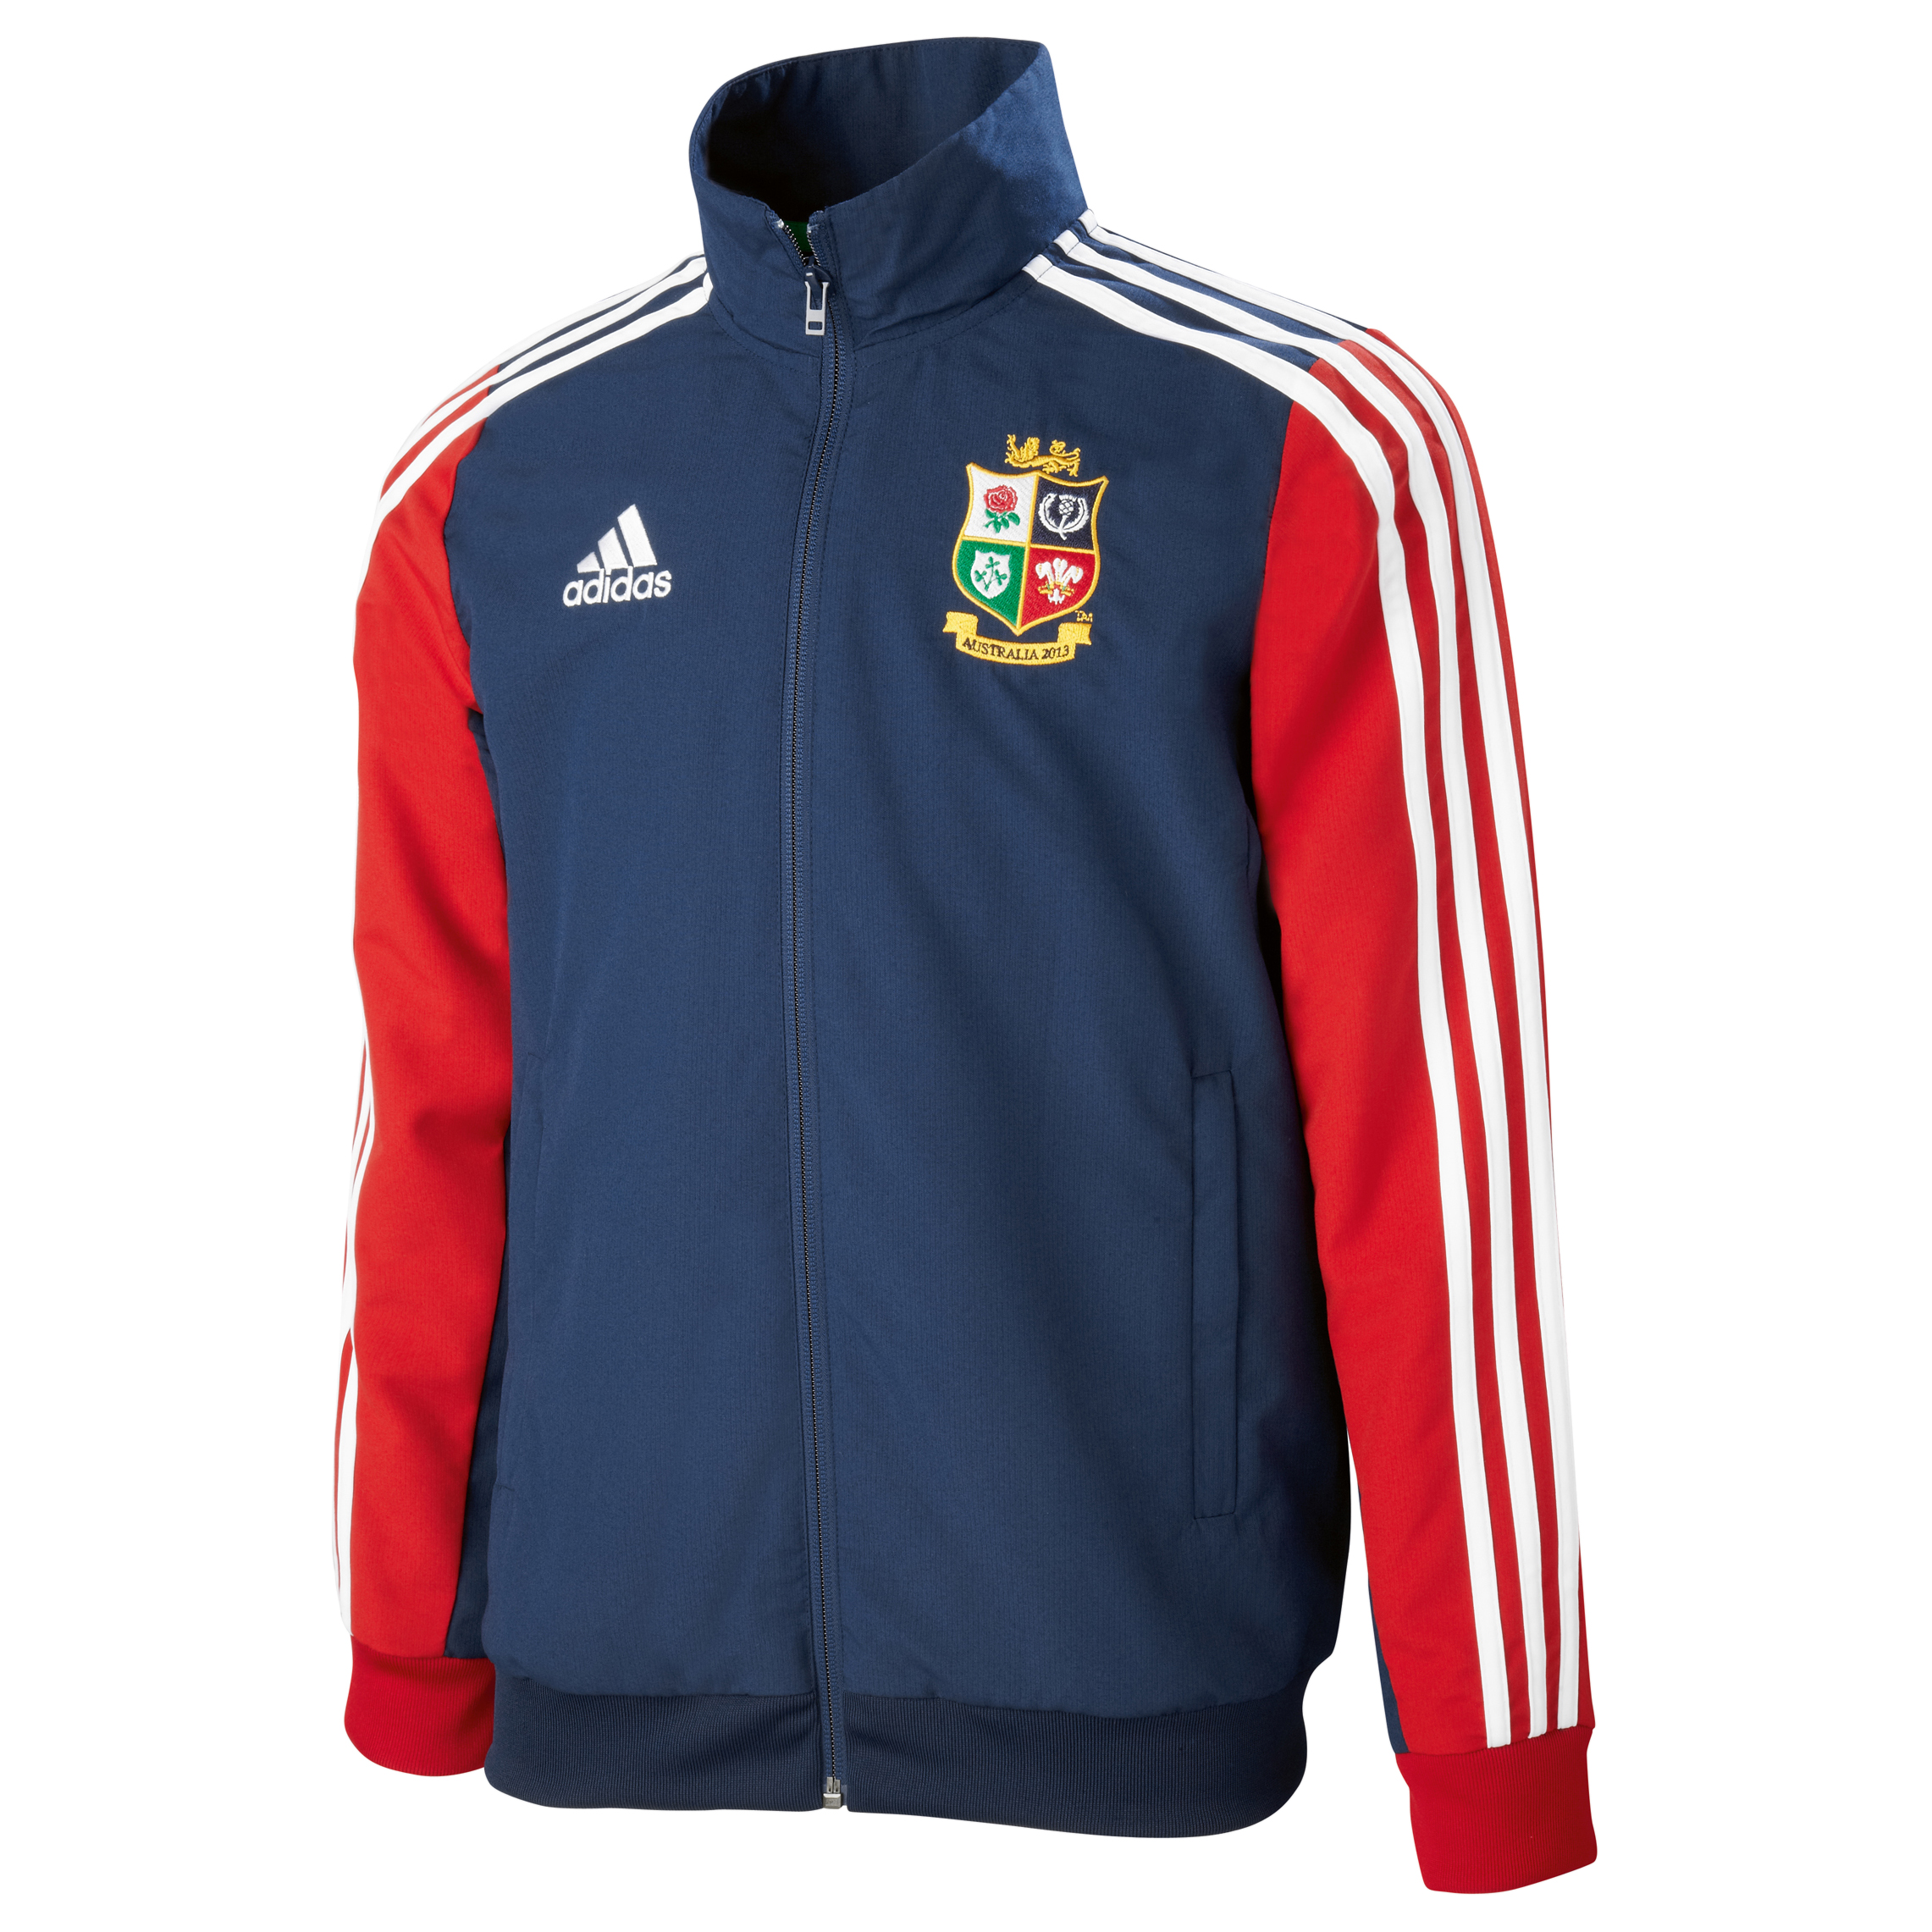 British & Irish Lions Presentation Jacket - Collegiate Navy/University Red/White - Kids